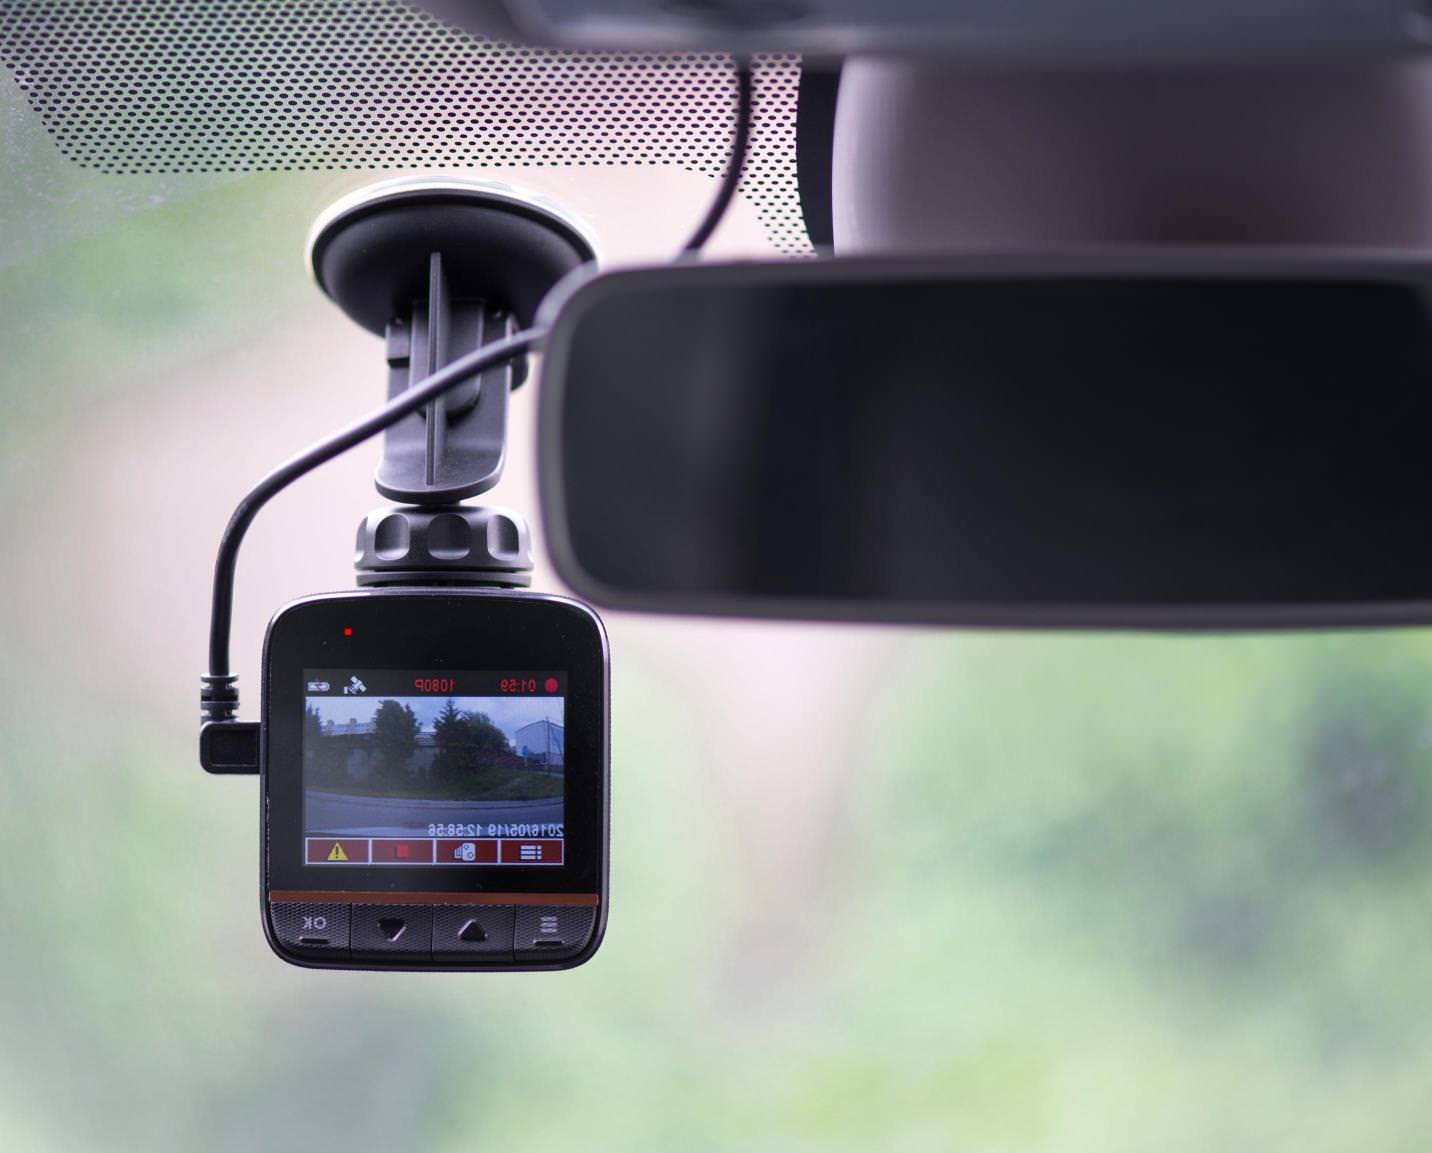 A dash cam with a monitor attached to a car windscreen recording the road